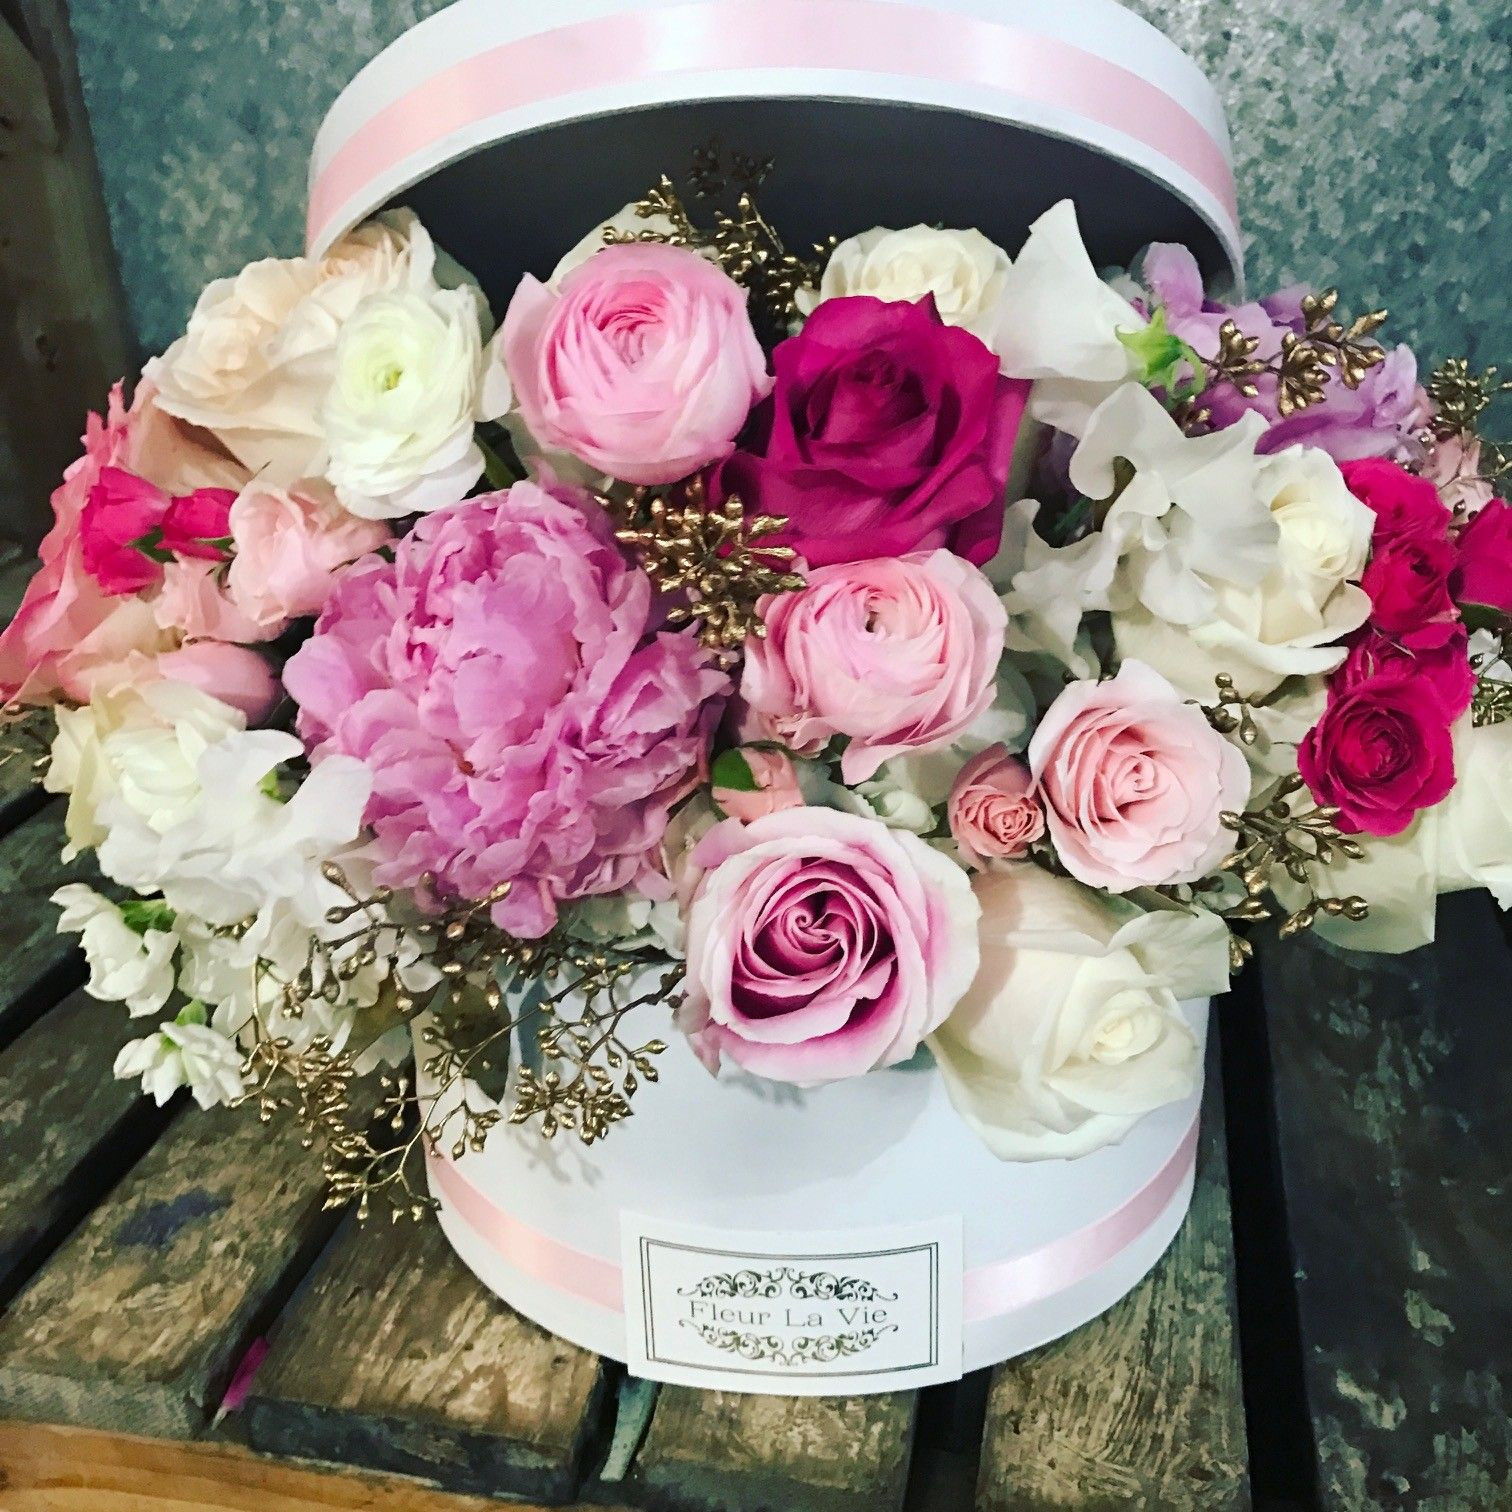 by Flower Allie and Fleur La Vie in Fullerton CA from Flower Allie the best florist in Fullerton All flowers are hand delivered and same day delivery